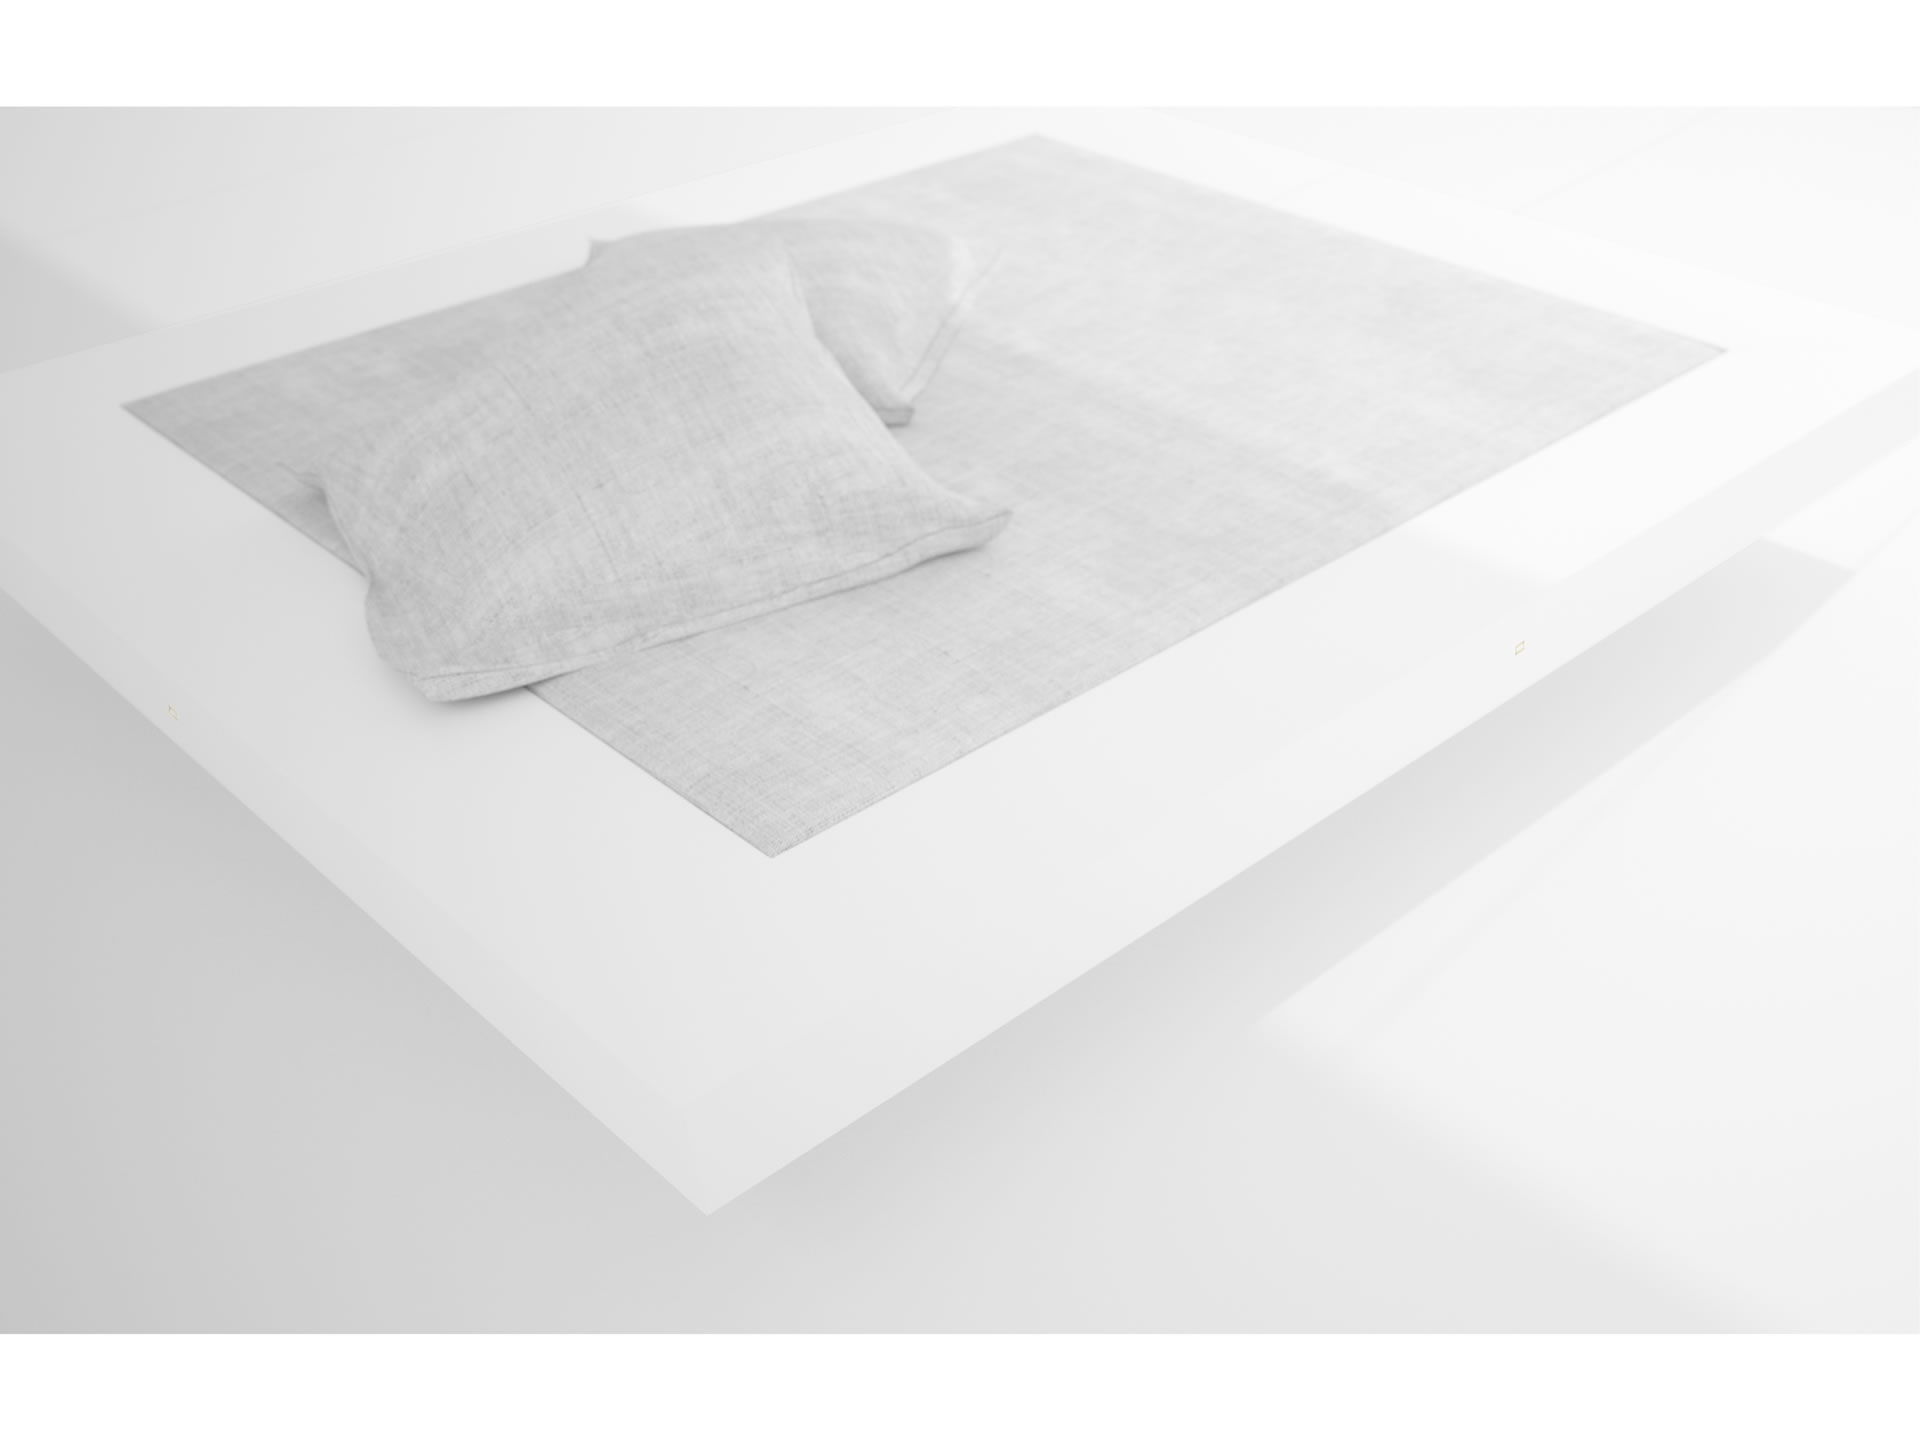 FELIX SCHWAKE BED II Nobel White Bed Floating